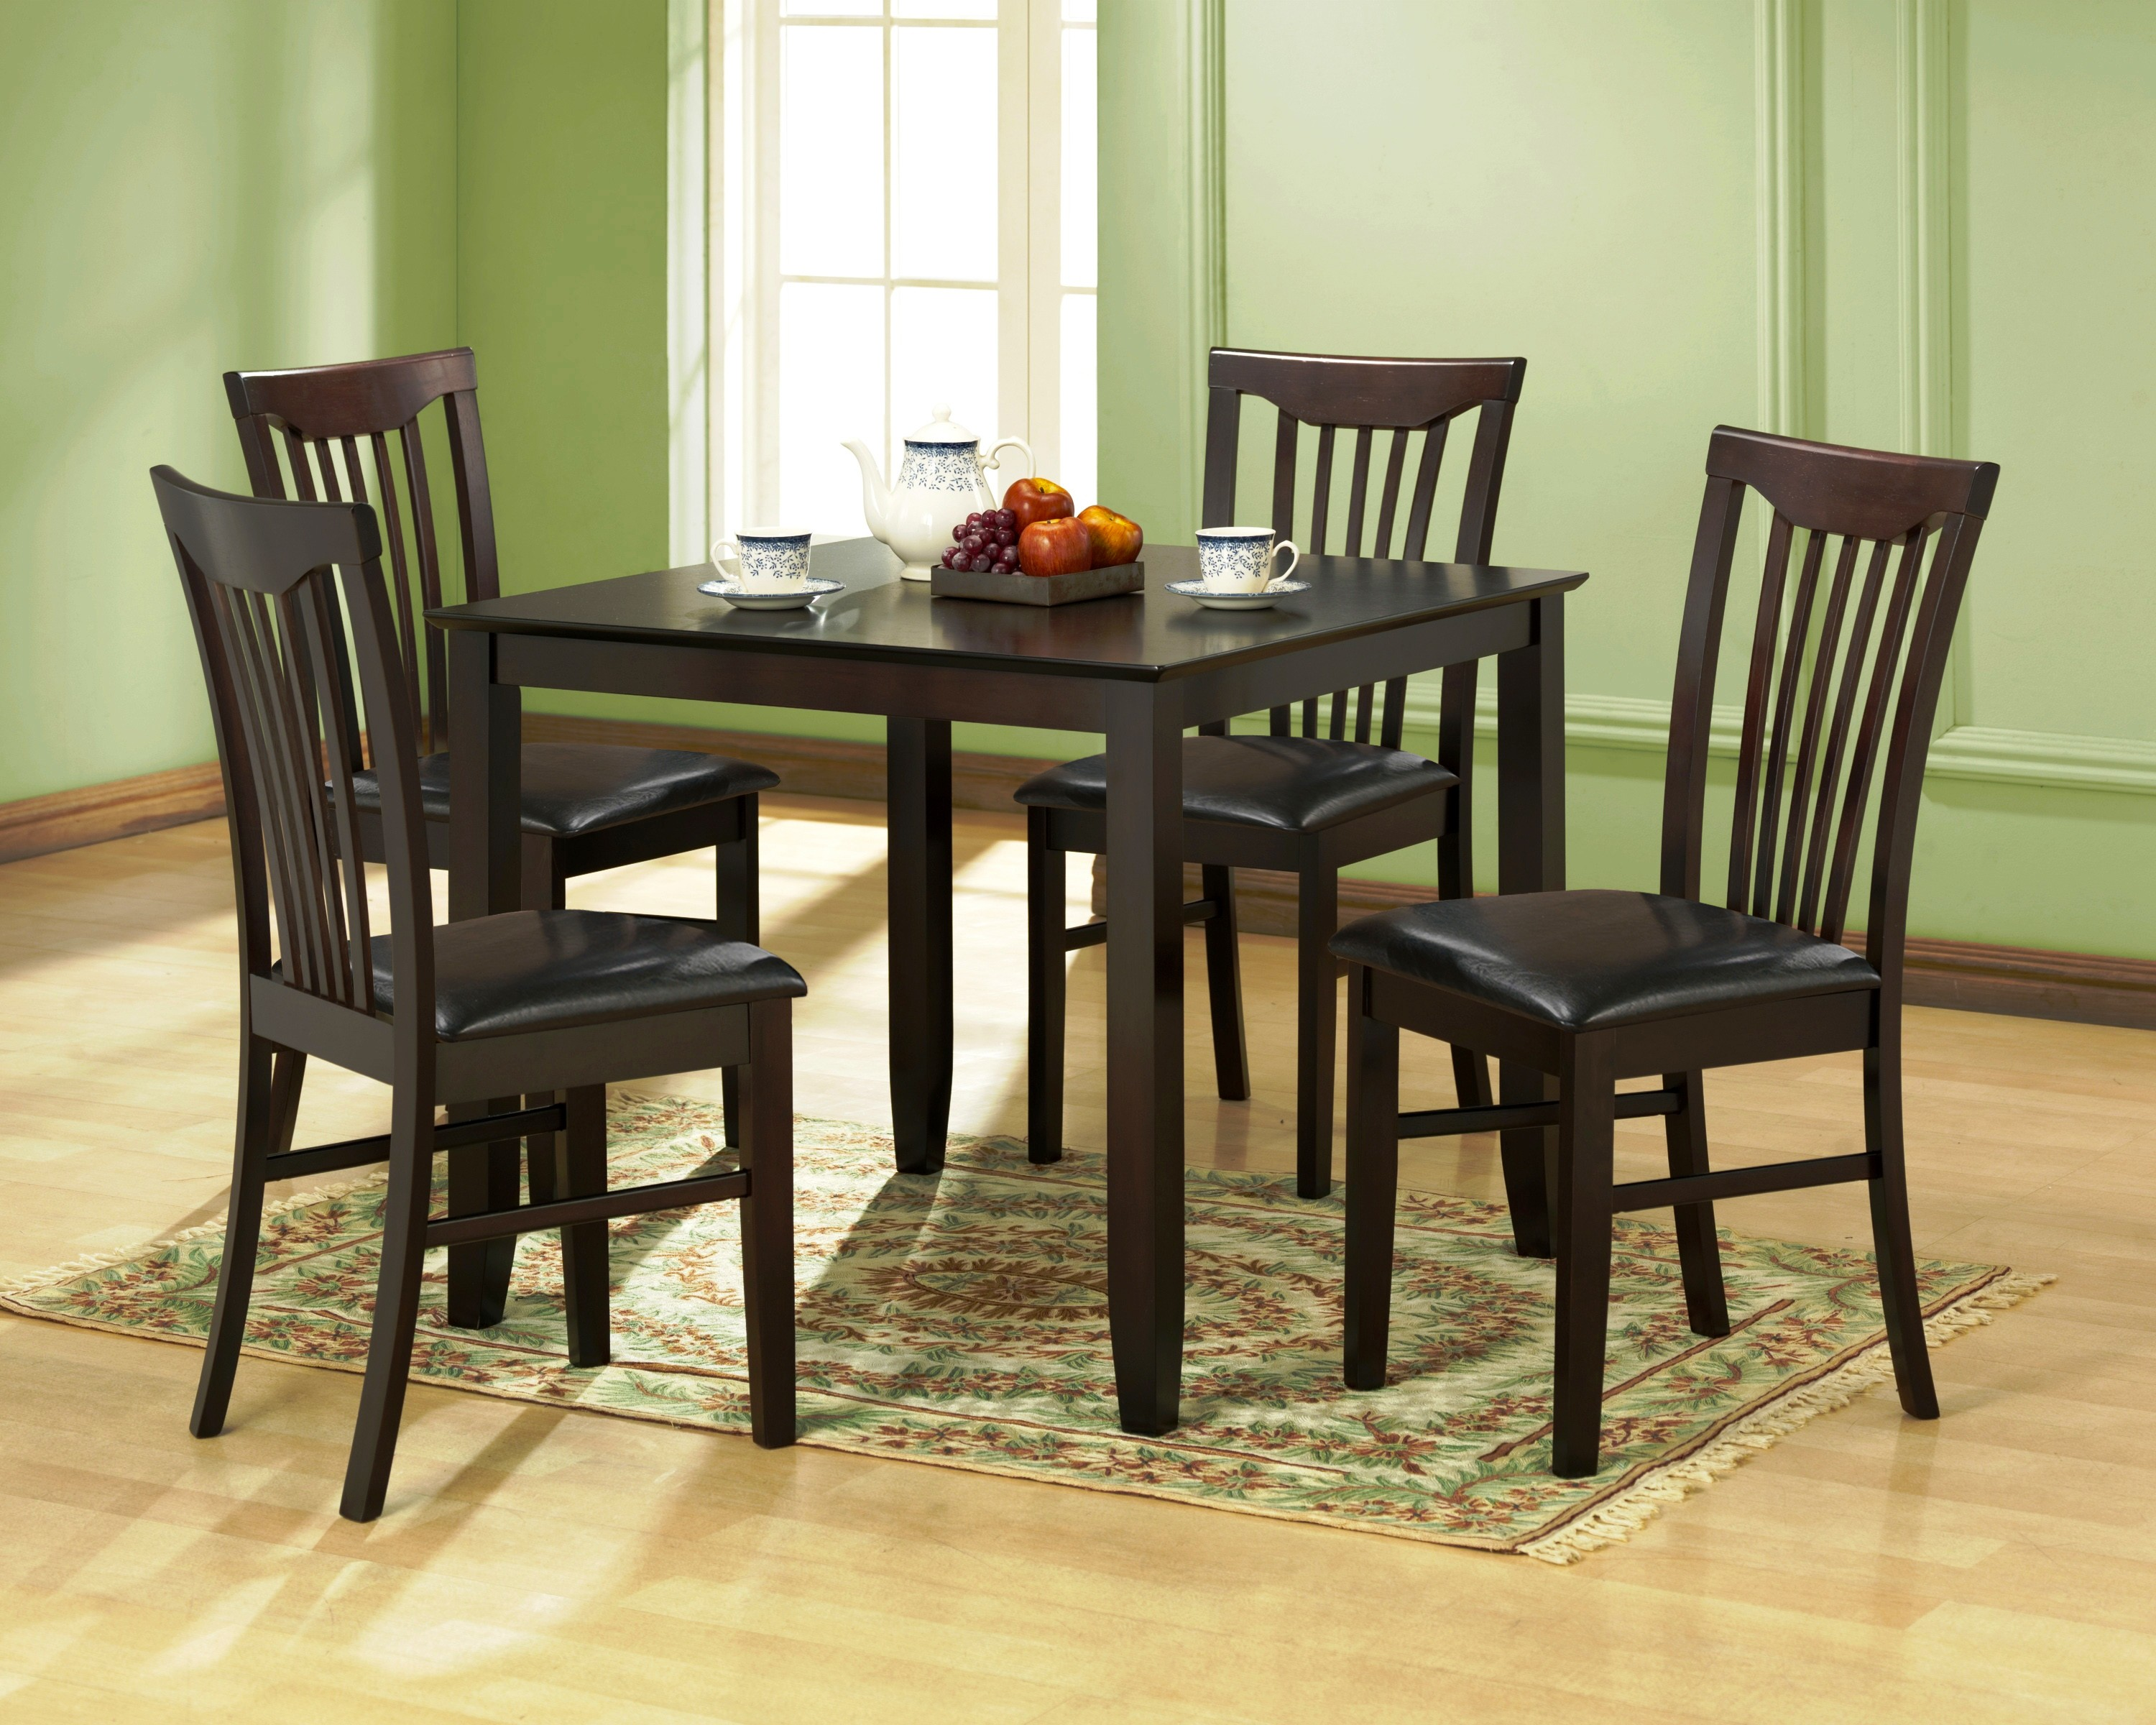 Dining table set deals dining table sets deals for Dining table set deals